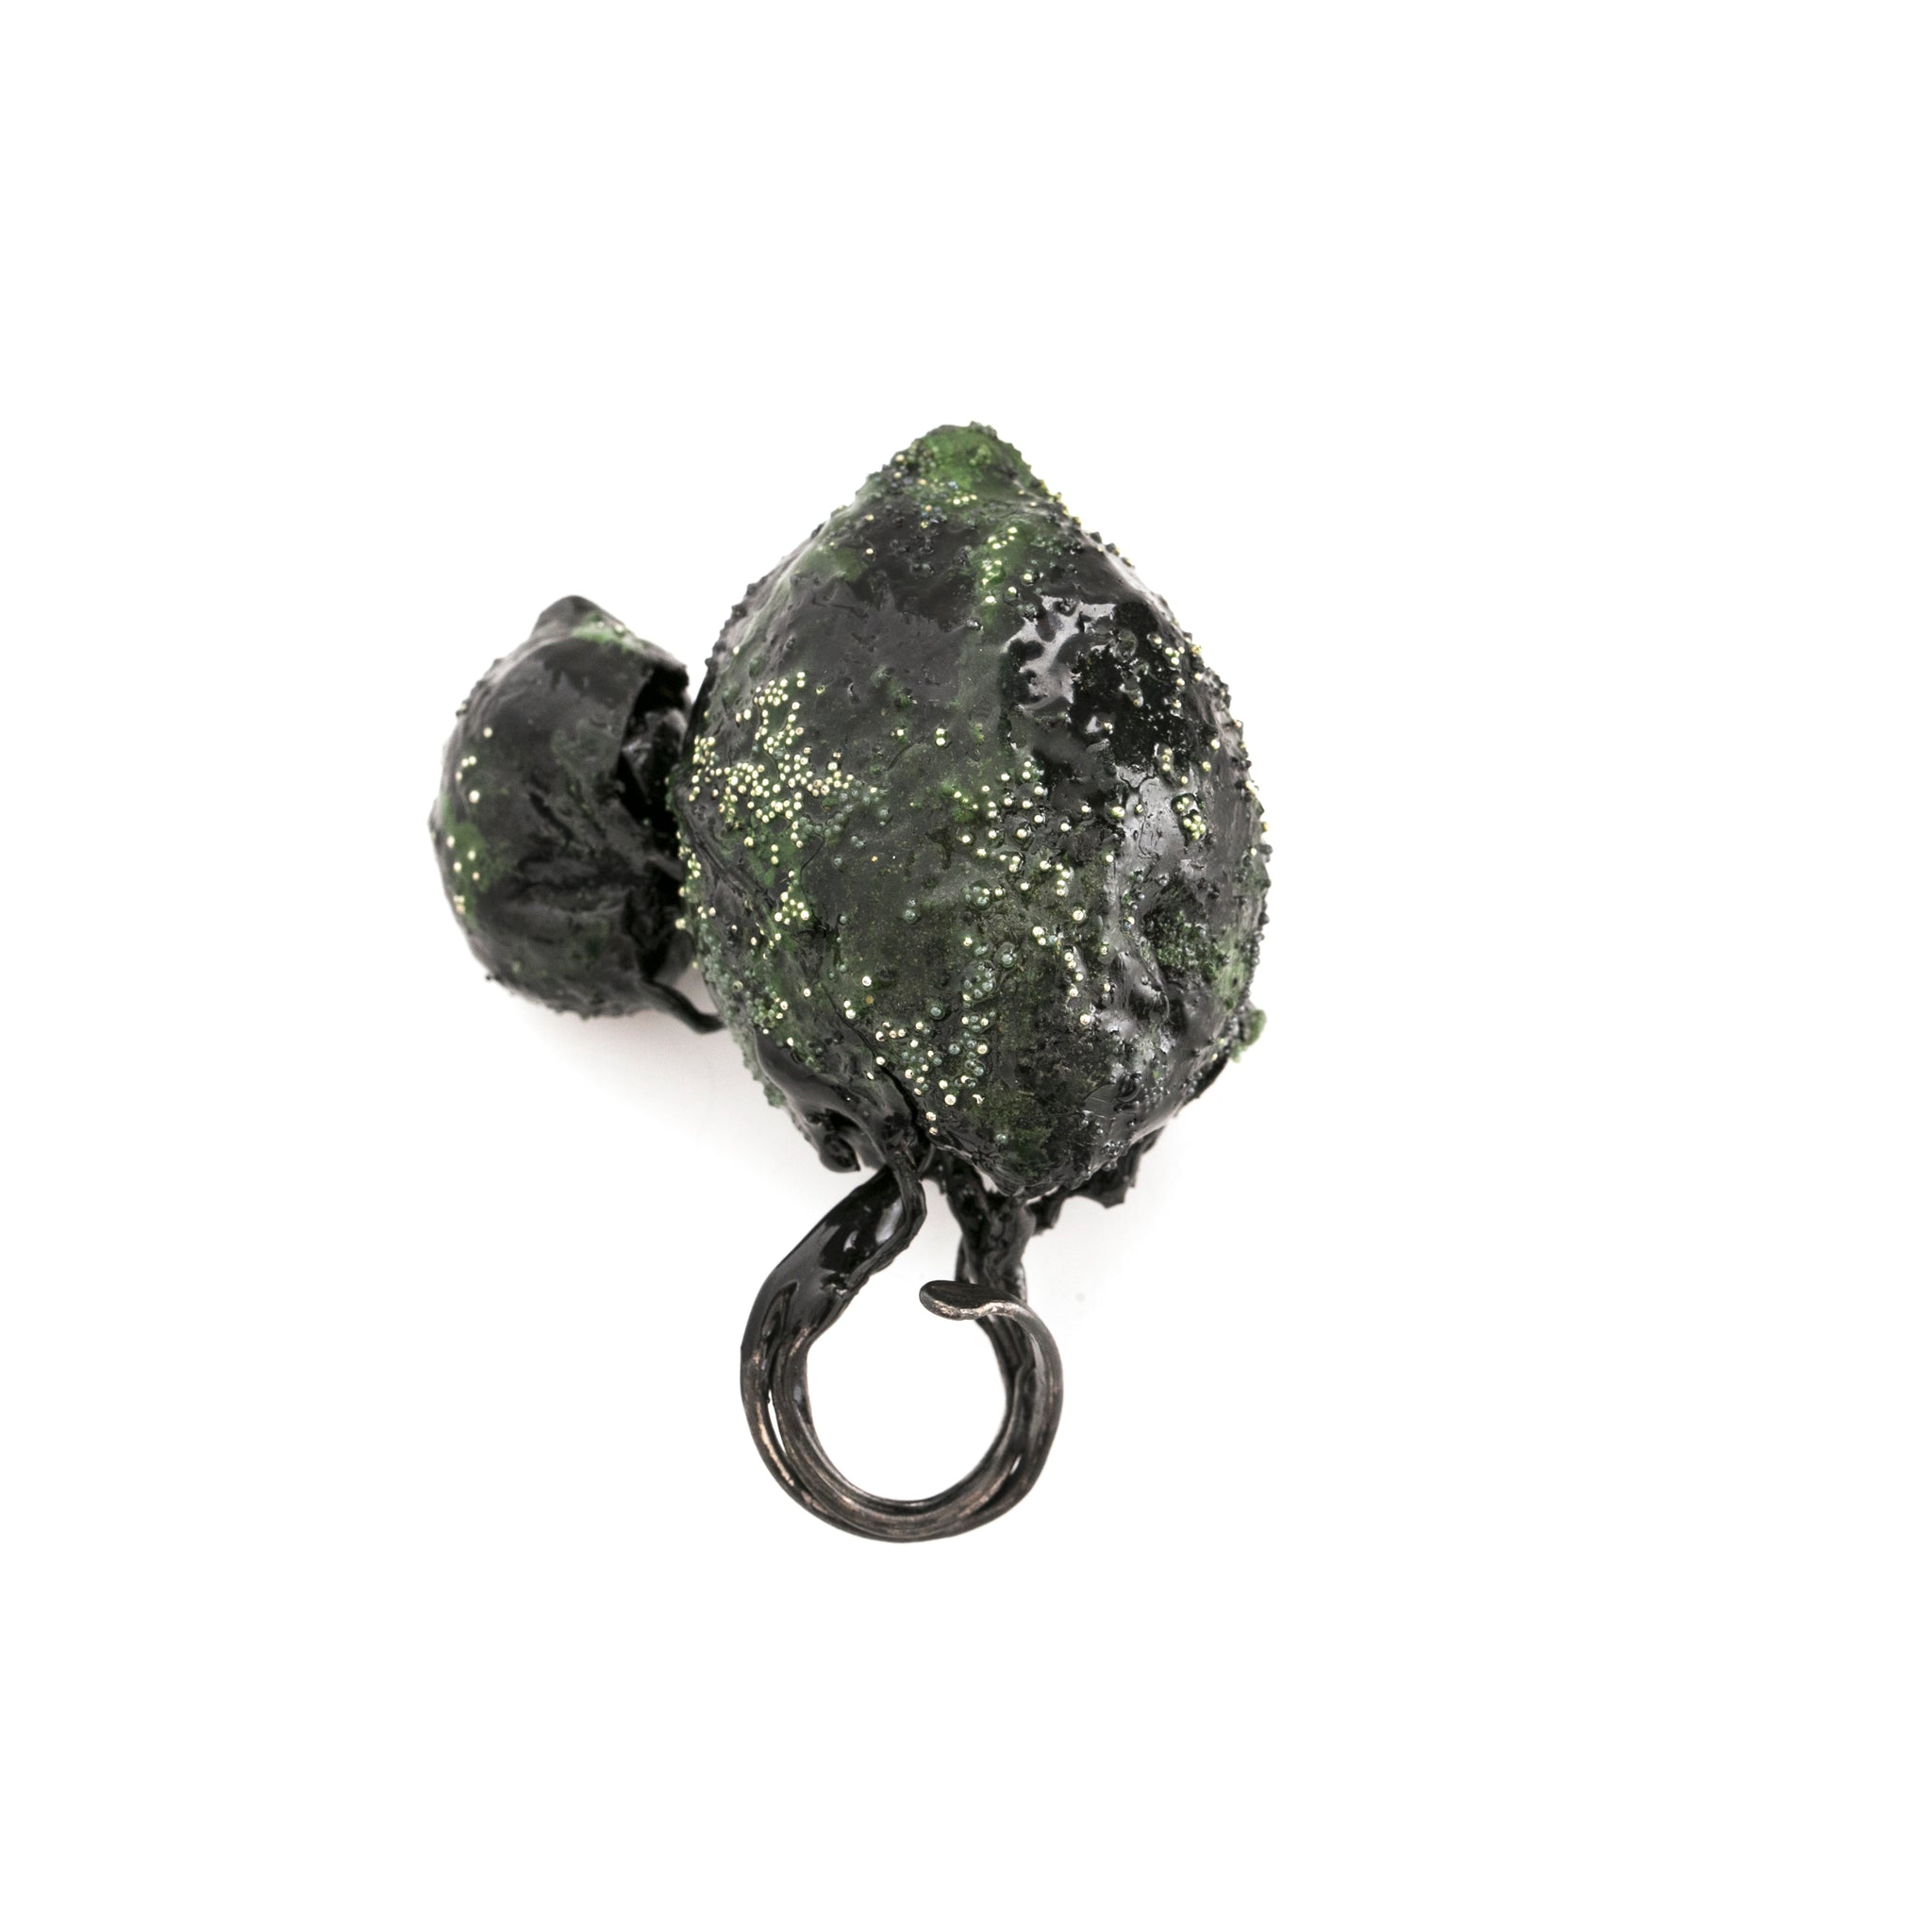 Green Duo Art Ring by Cleopatra Cosulet - Art Jewellery Store: Song of Jewellery